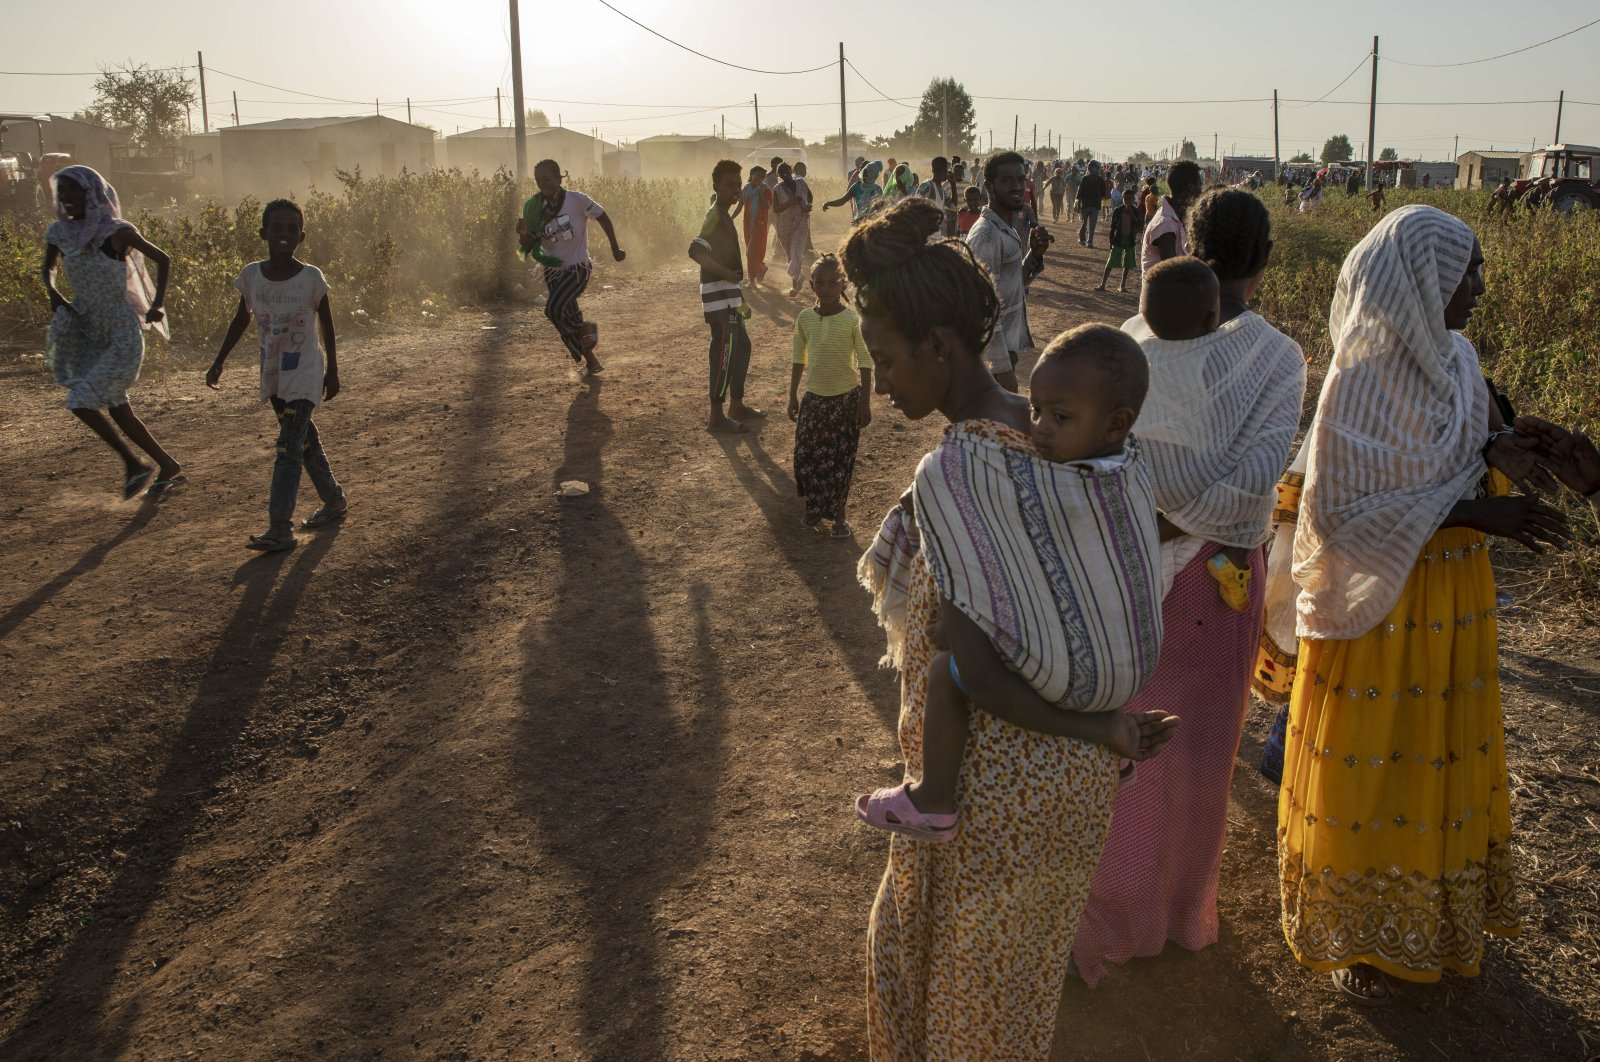 Tigray refugees who fled a conflict in Ethiopia's Tigray region run at Village 8, the transit center near the Lugdi border crossing, eastern Sudan, Nov. 22, 2020. (AP Photo)